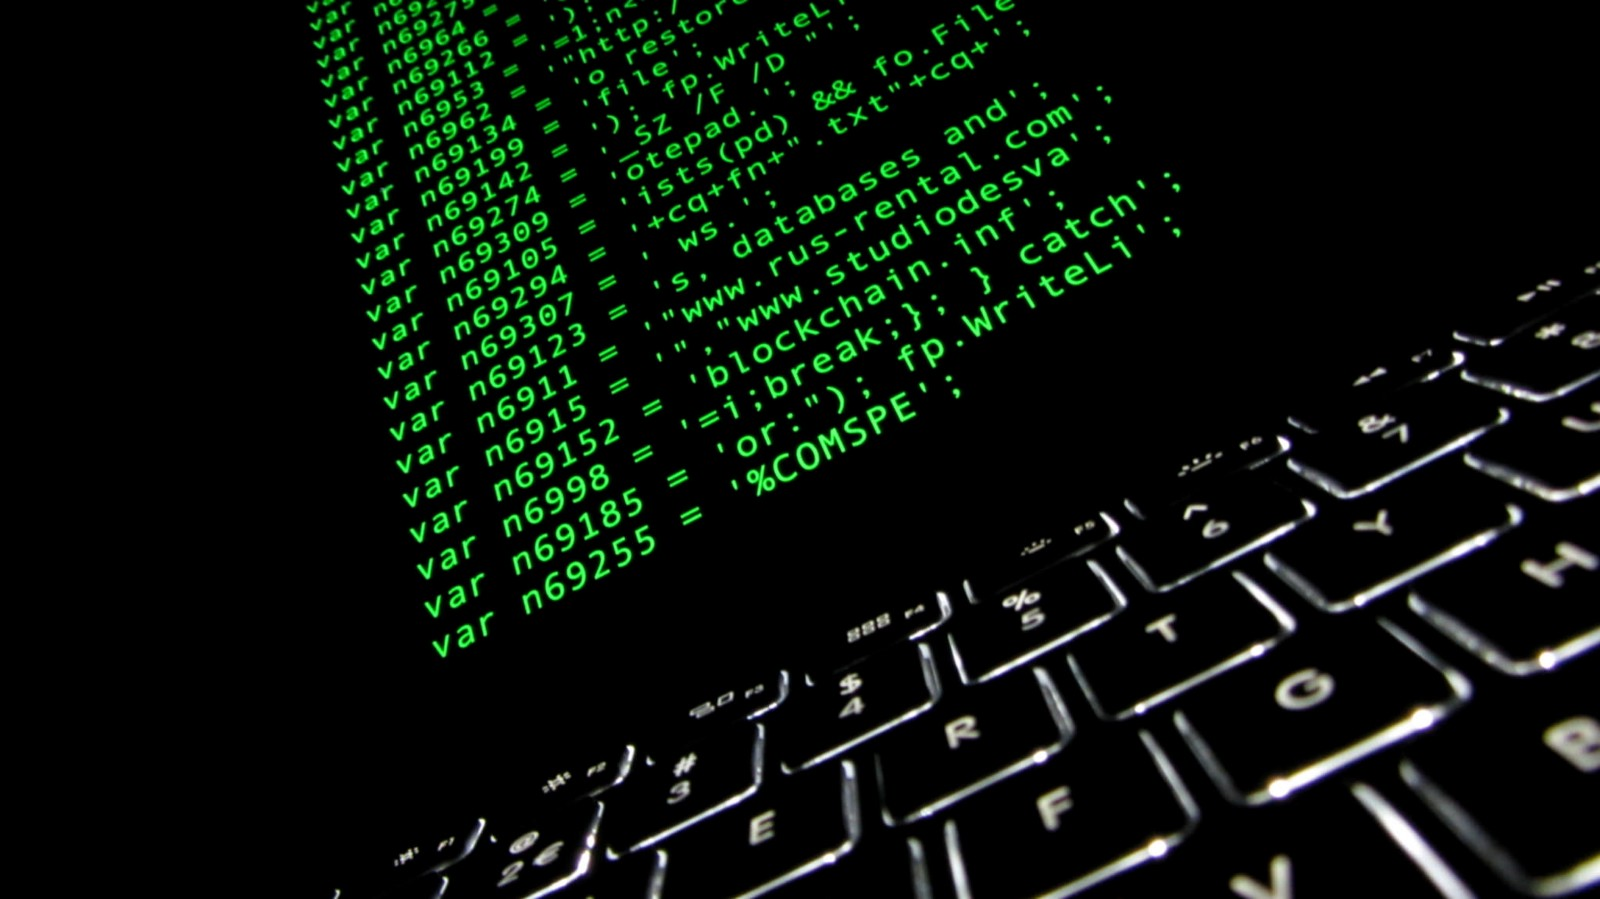 /smart-contract-vulnerabilities-remain-a-clear-and-present-danger-59acaf82213f feature image